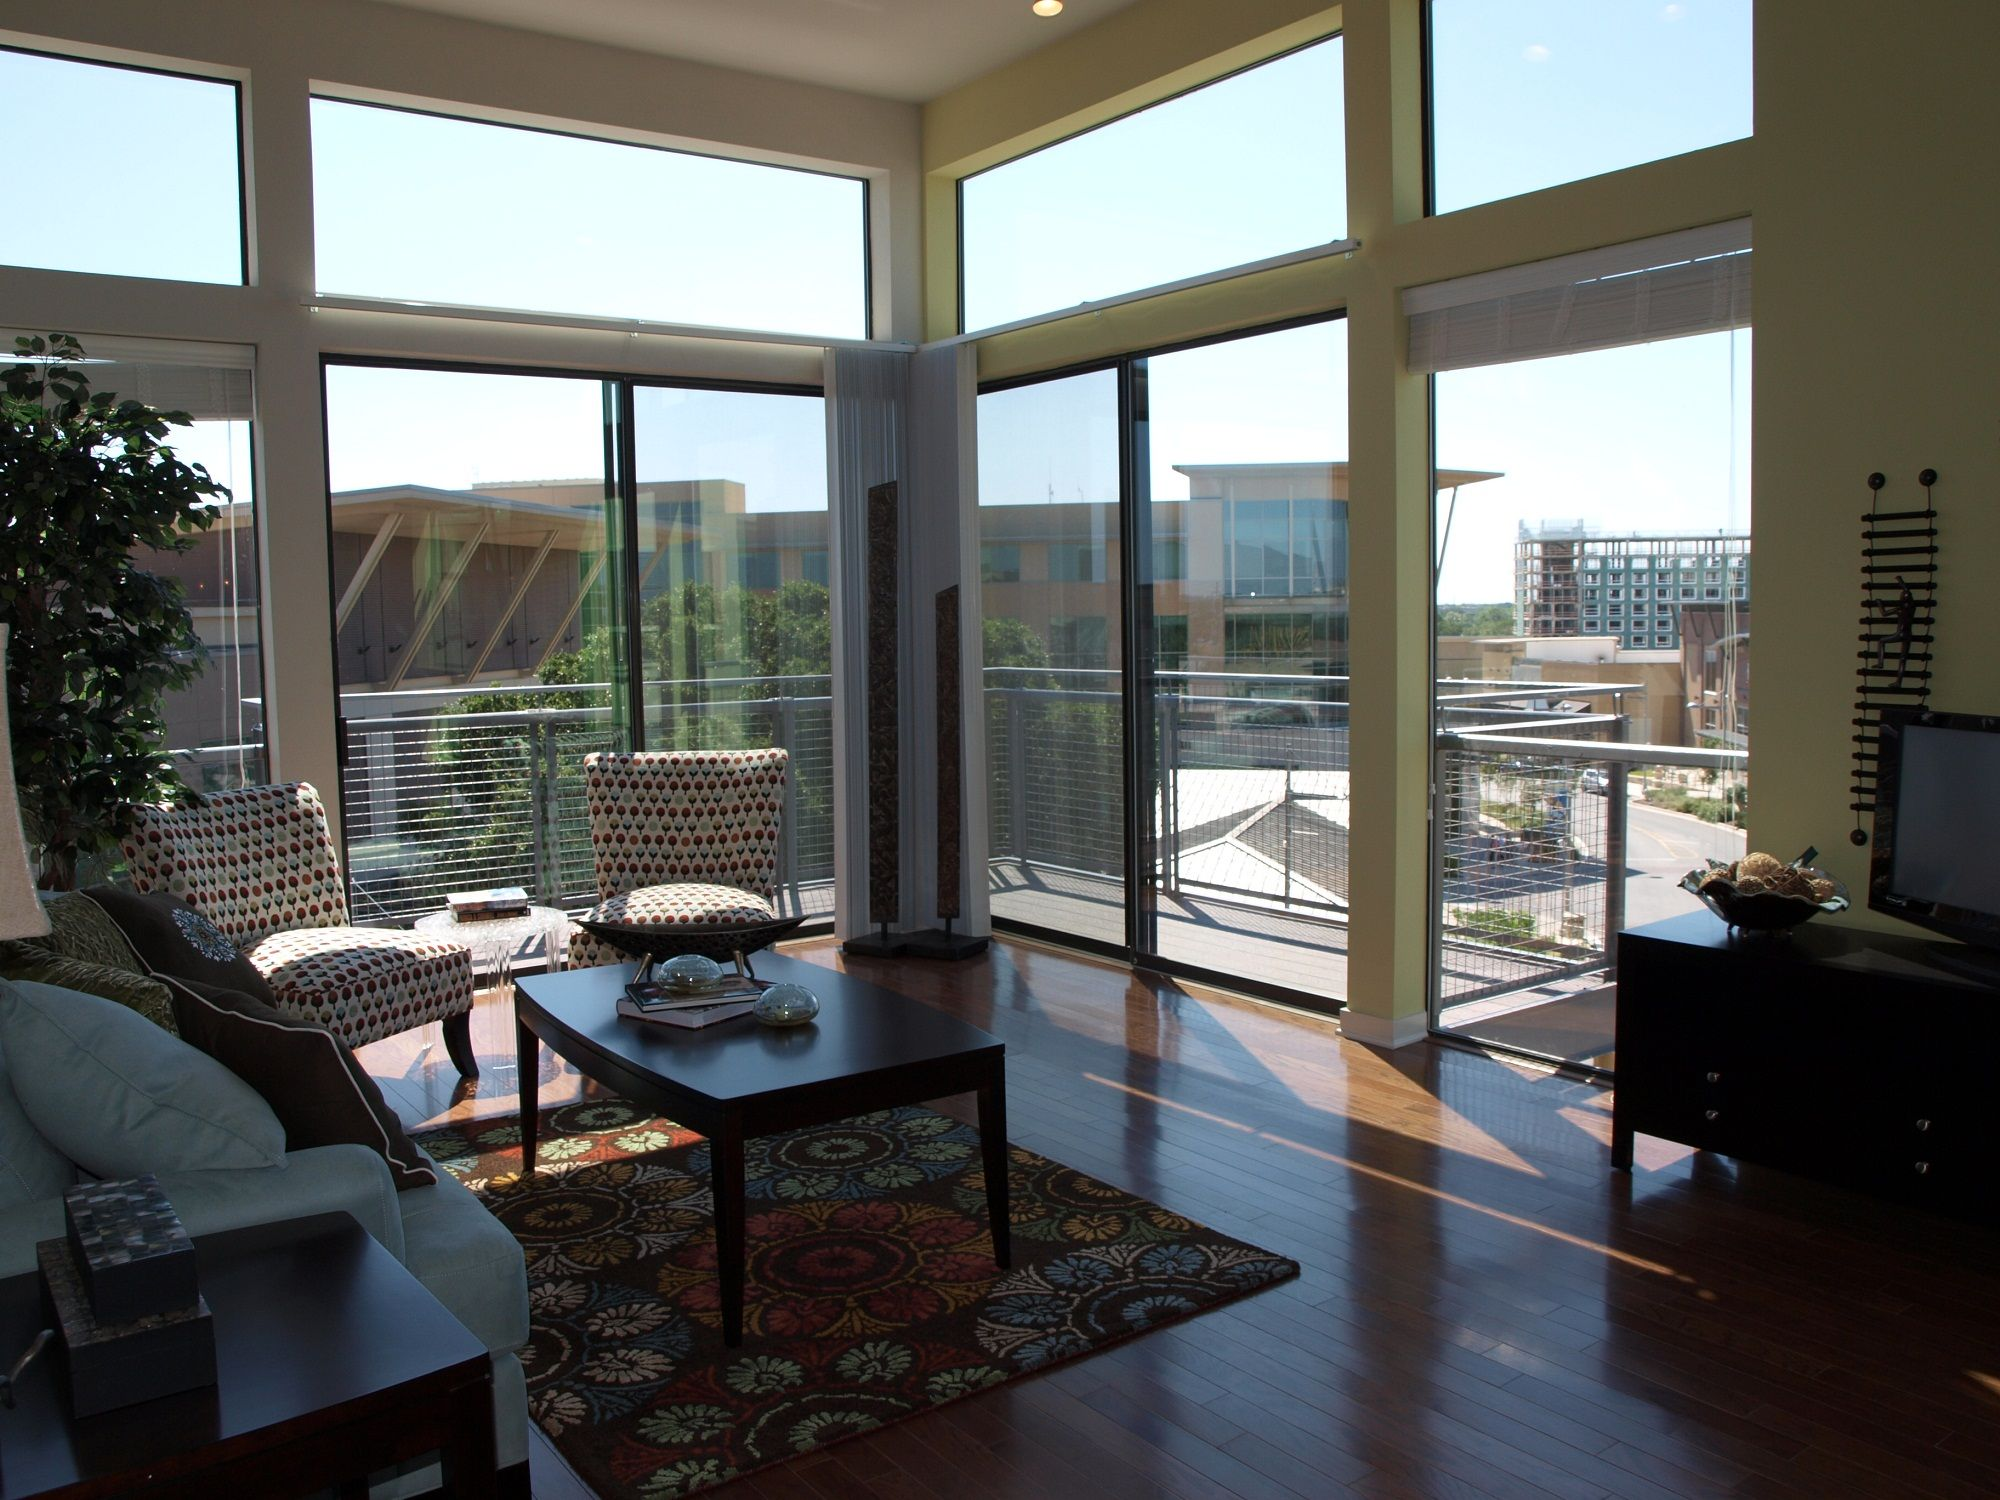 Wonderful Home Decor Austin Design Ideas Http Tany P 2239 Are You Looking For Modern Yes If The House